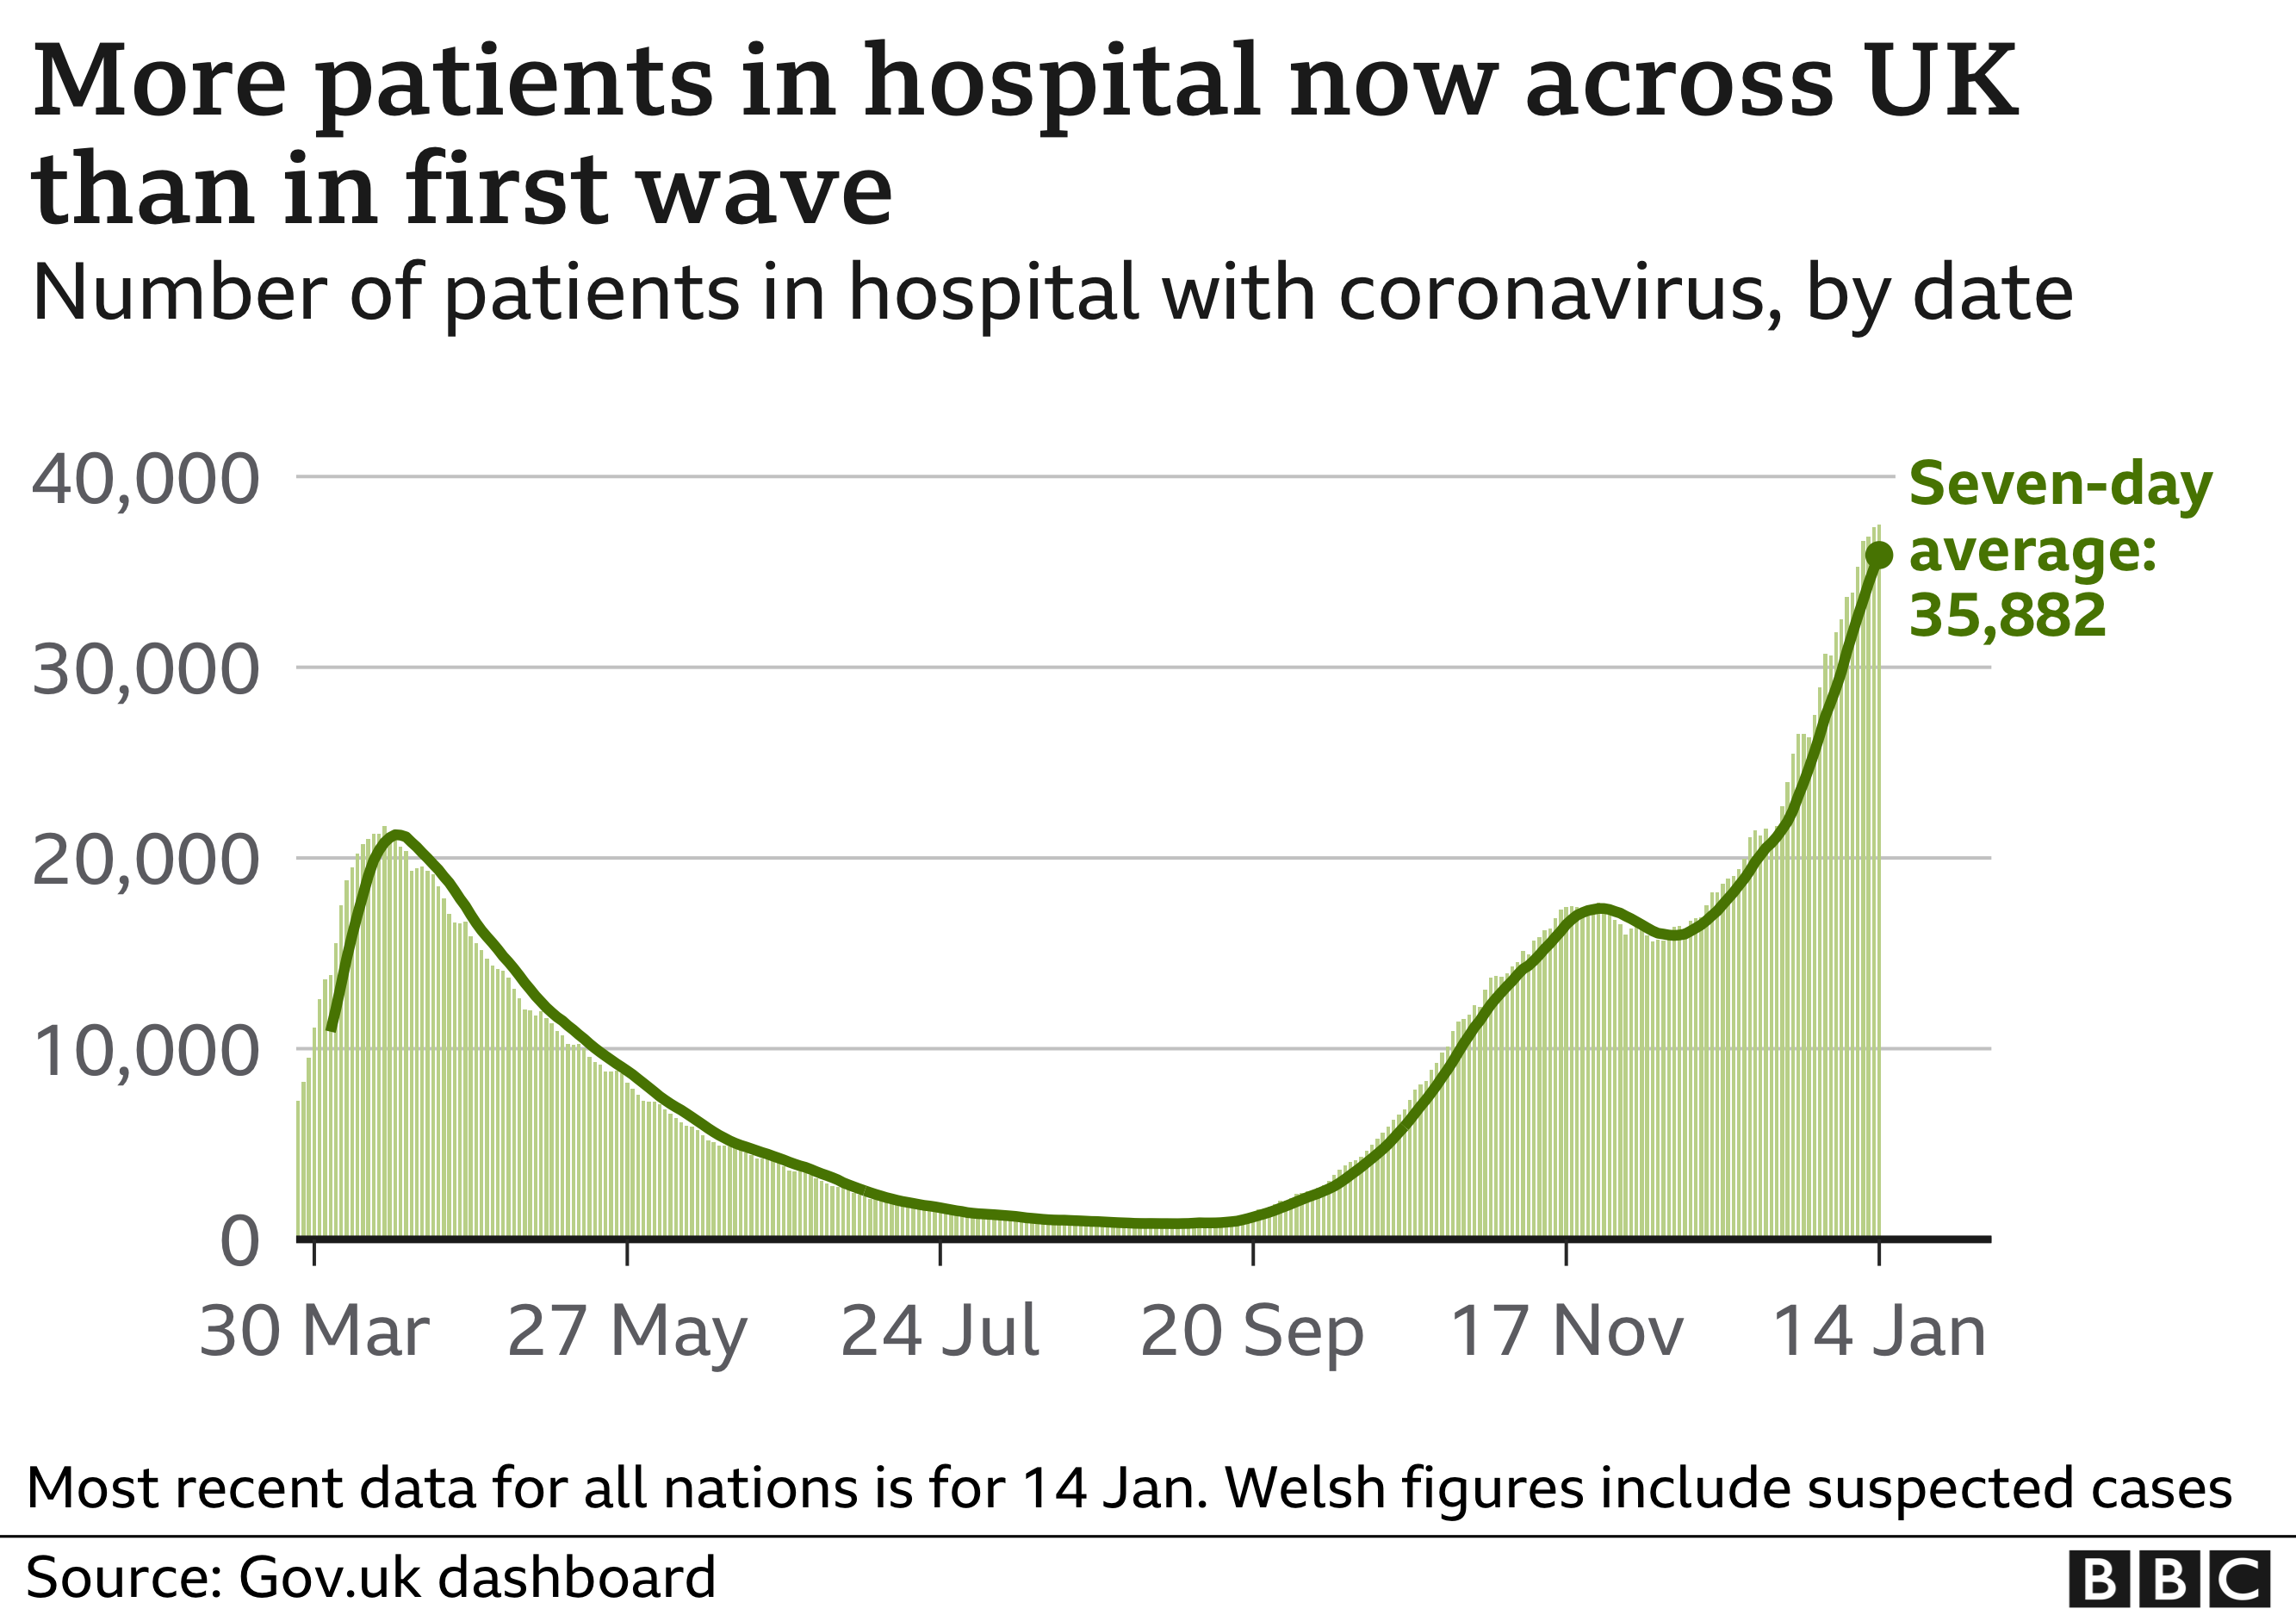 Chart showing the number of coronavirus patients in hospital in the UK